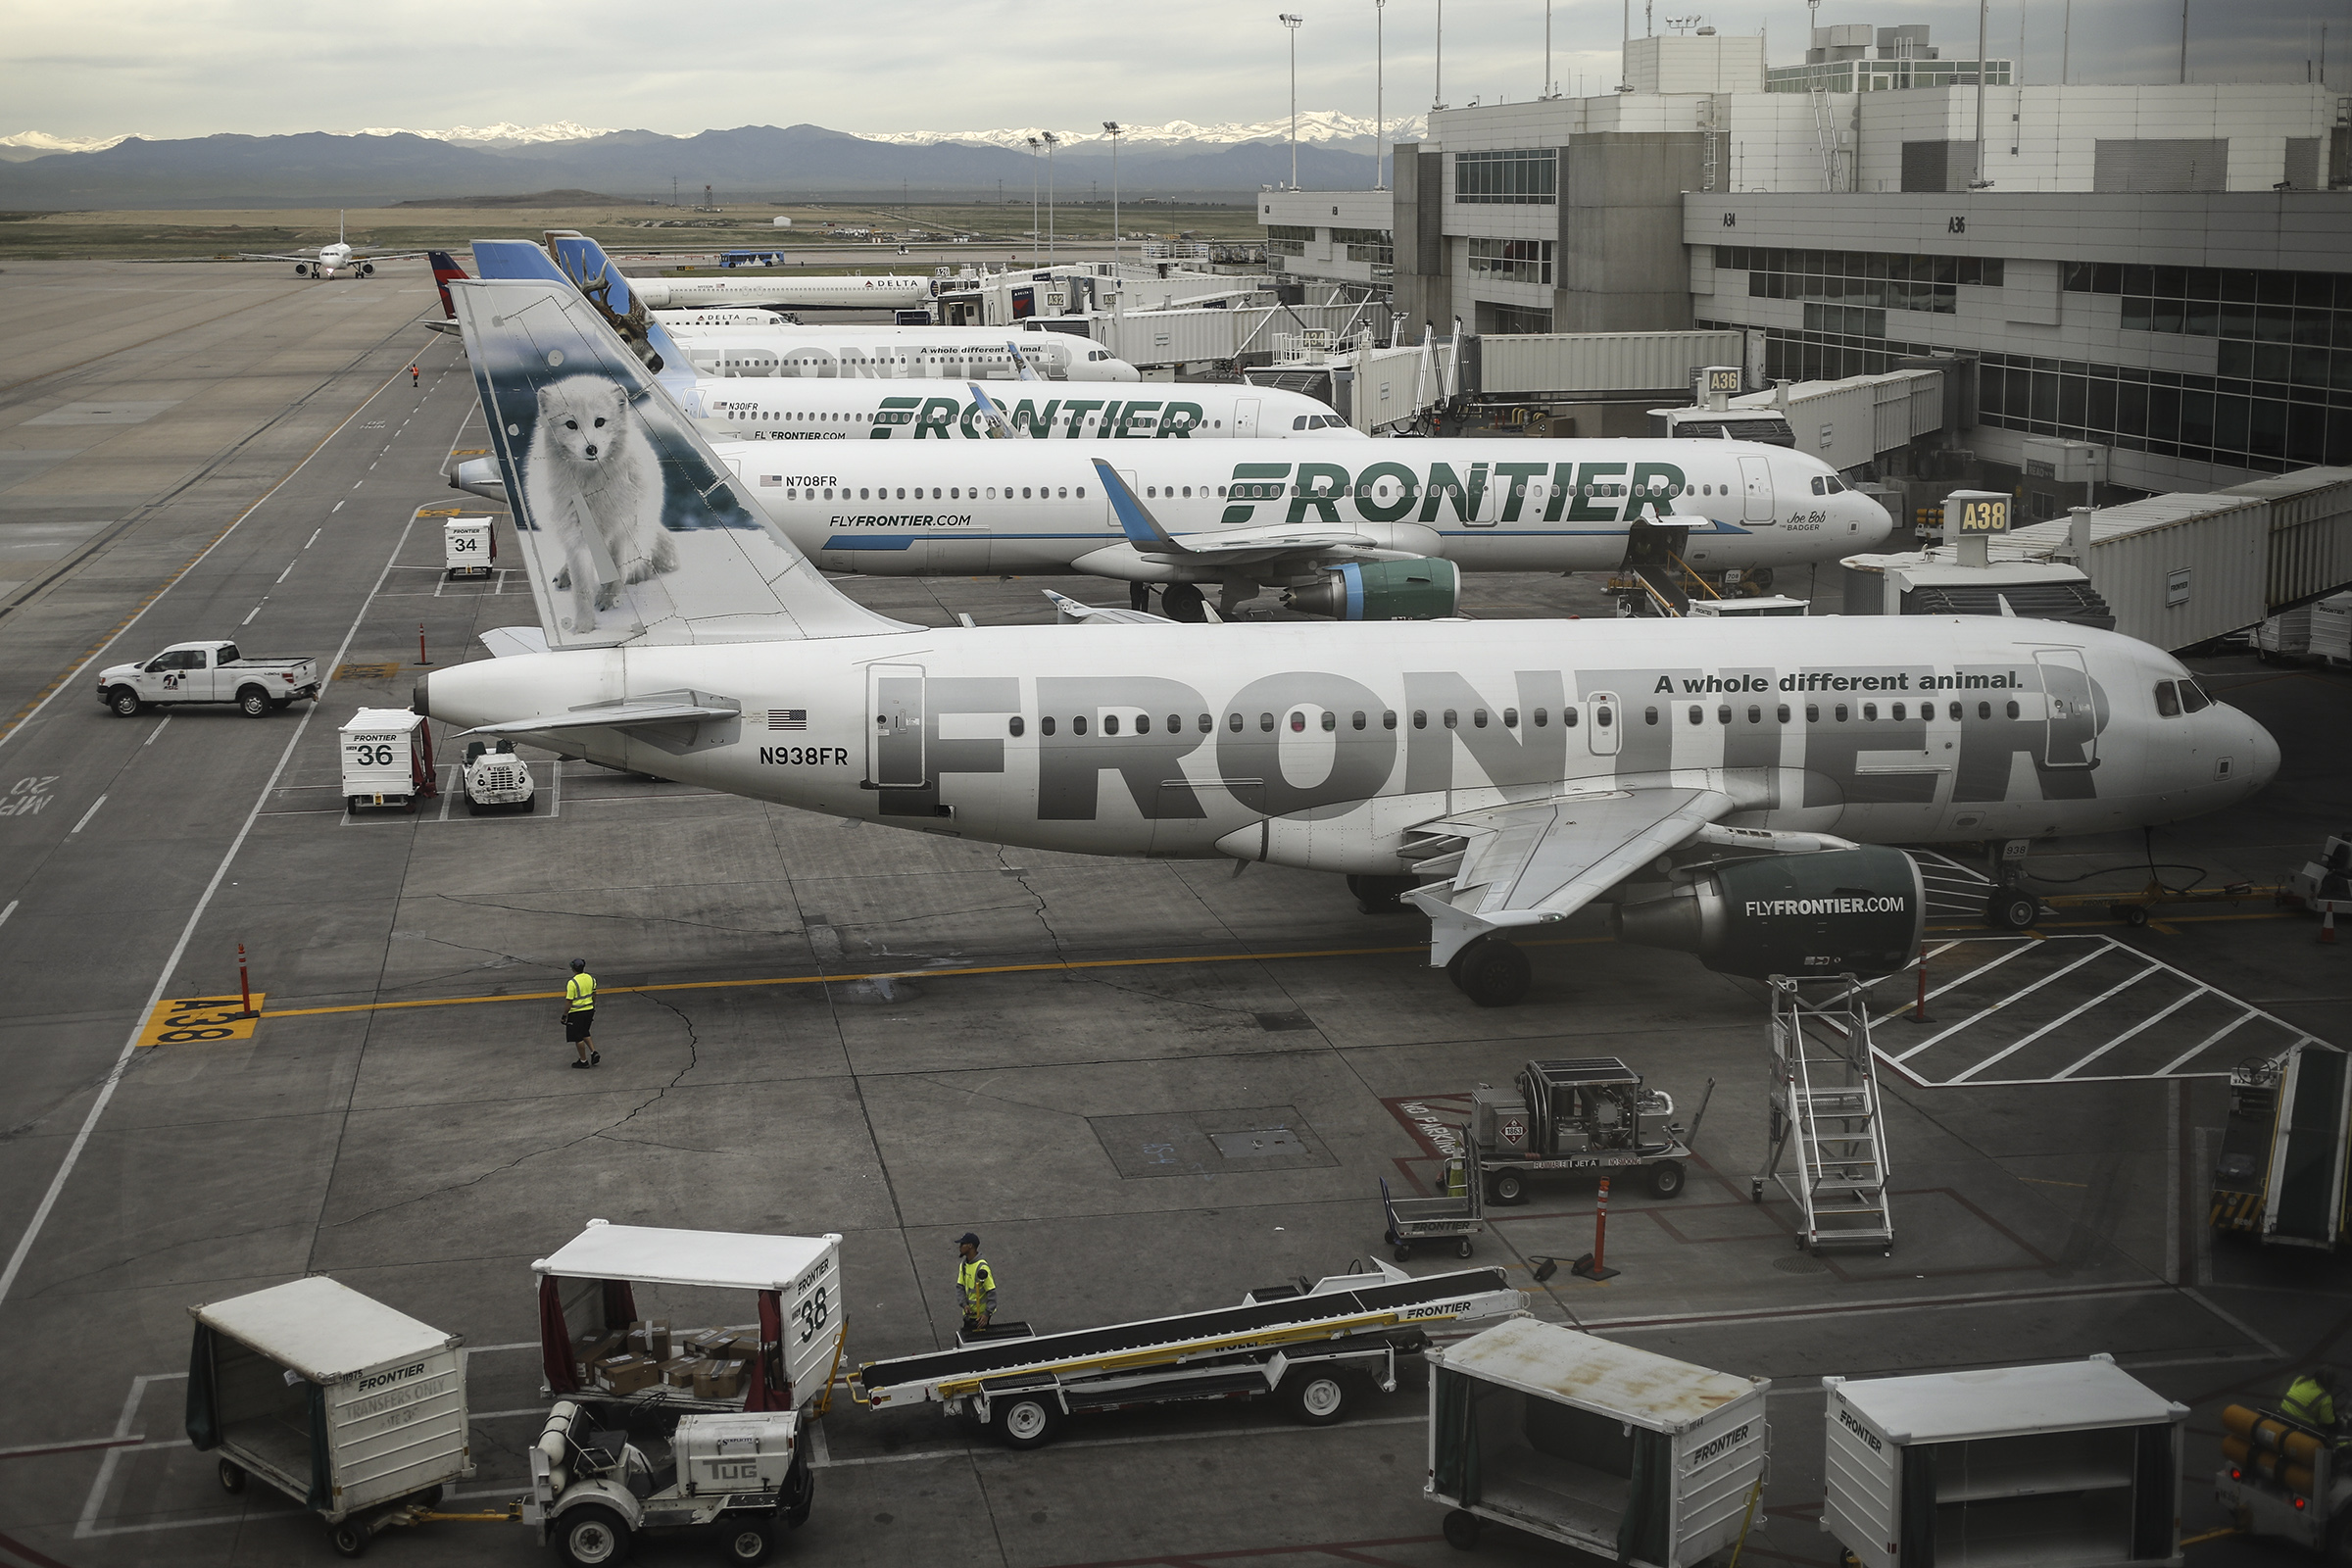 Photo: Frontier Airlines plane at DIA